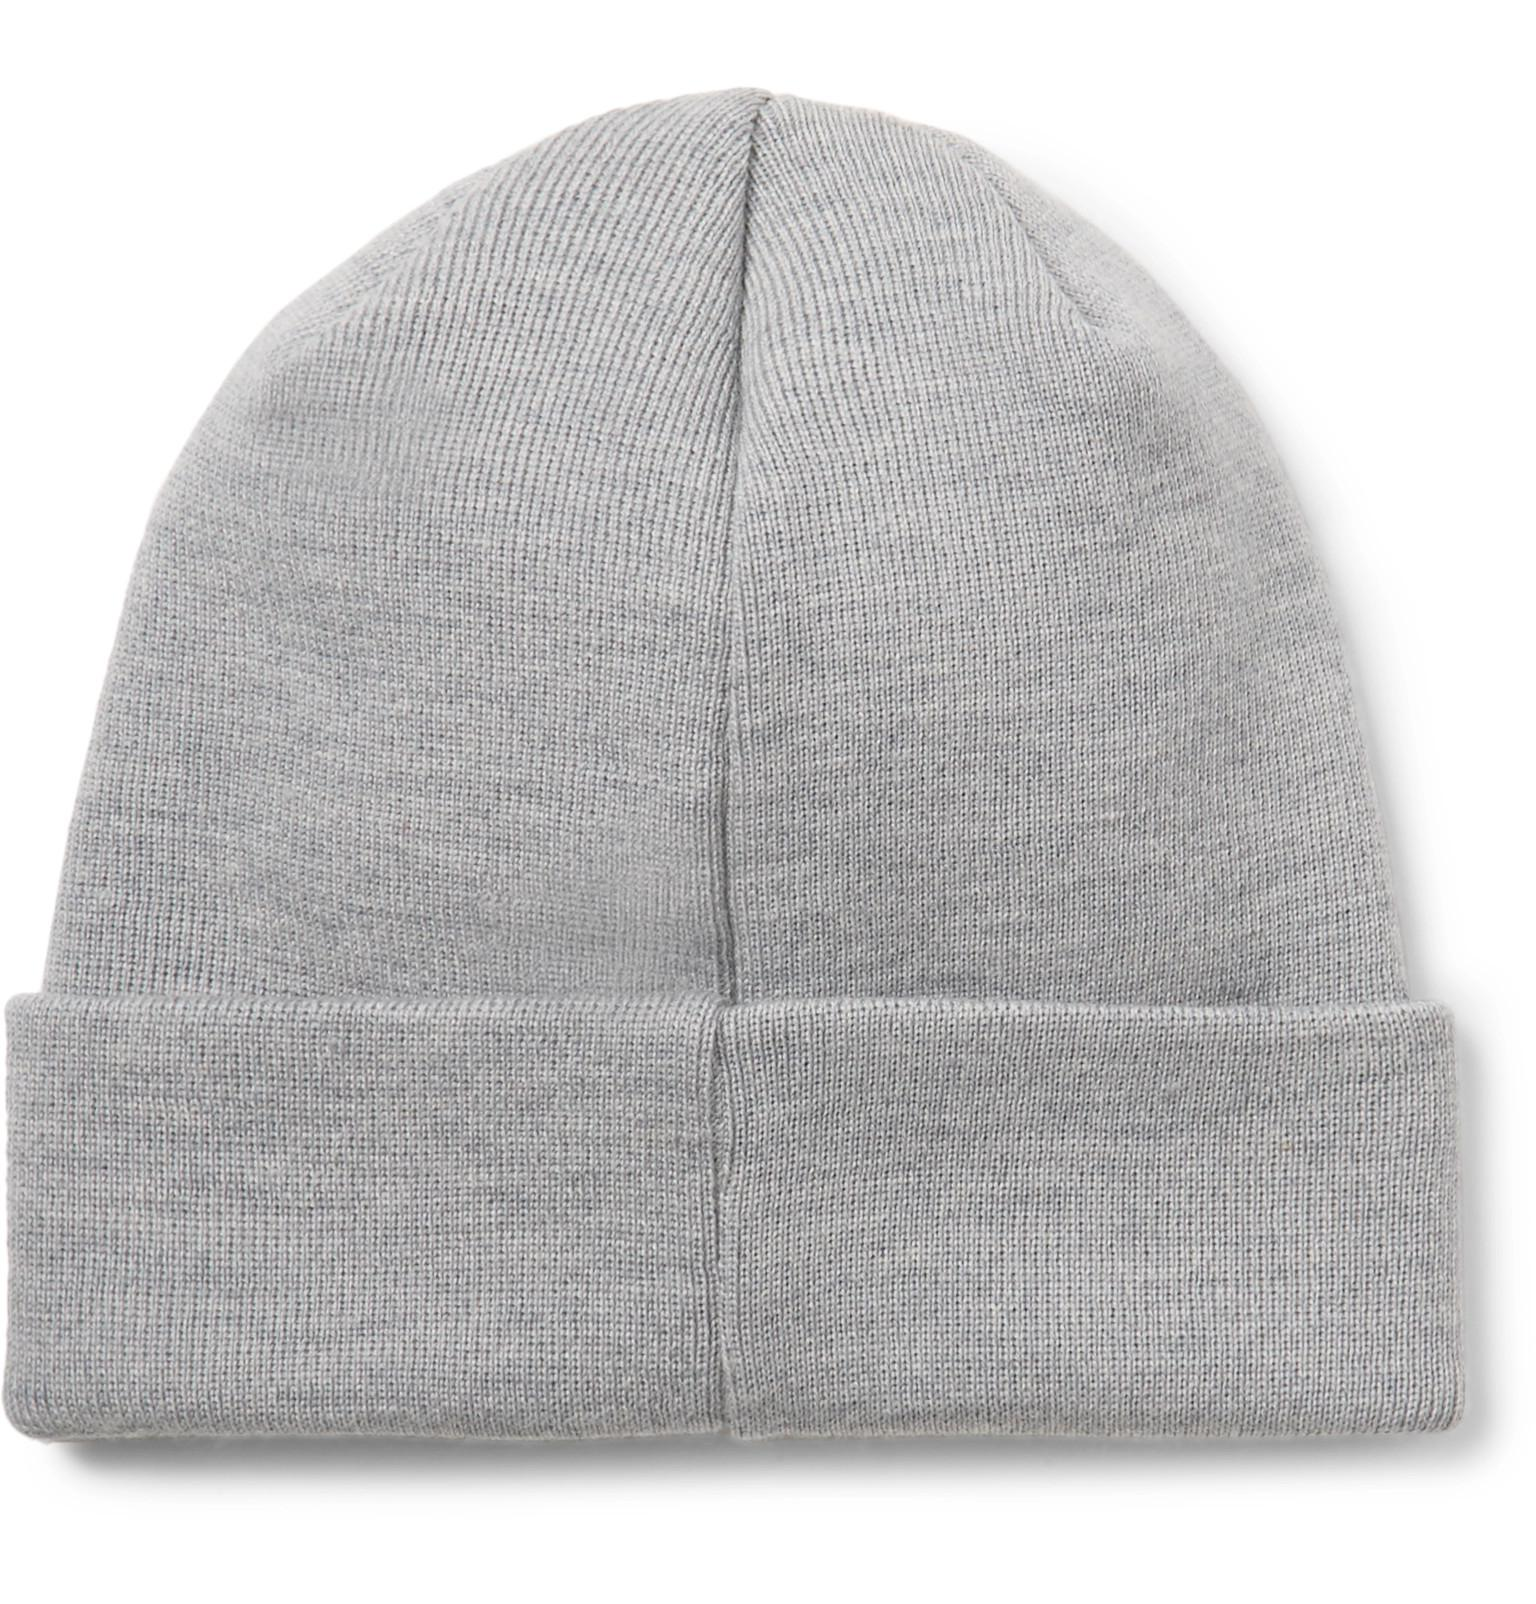 f32398ce0c4 Lyst - Norse Projects Ribbed Merino Wool Beanie in Gray for Men